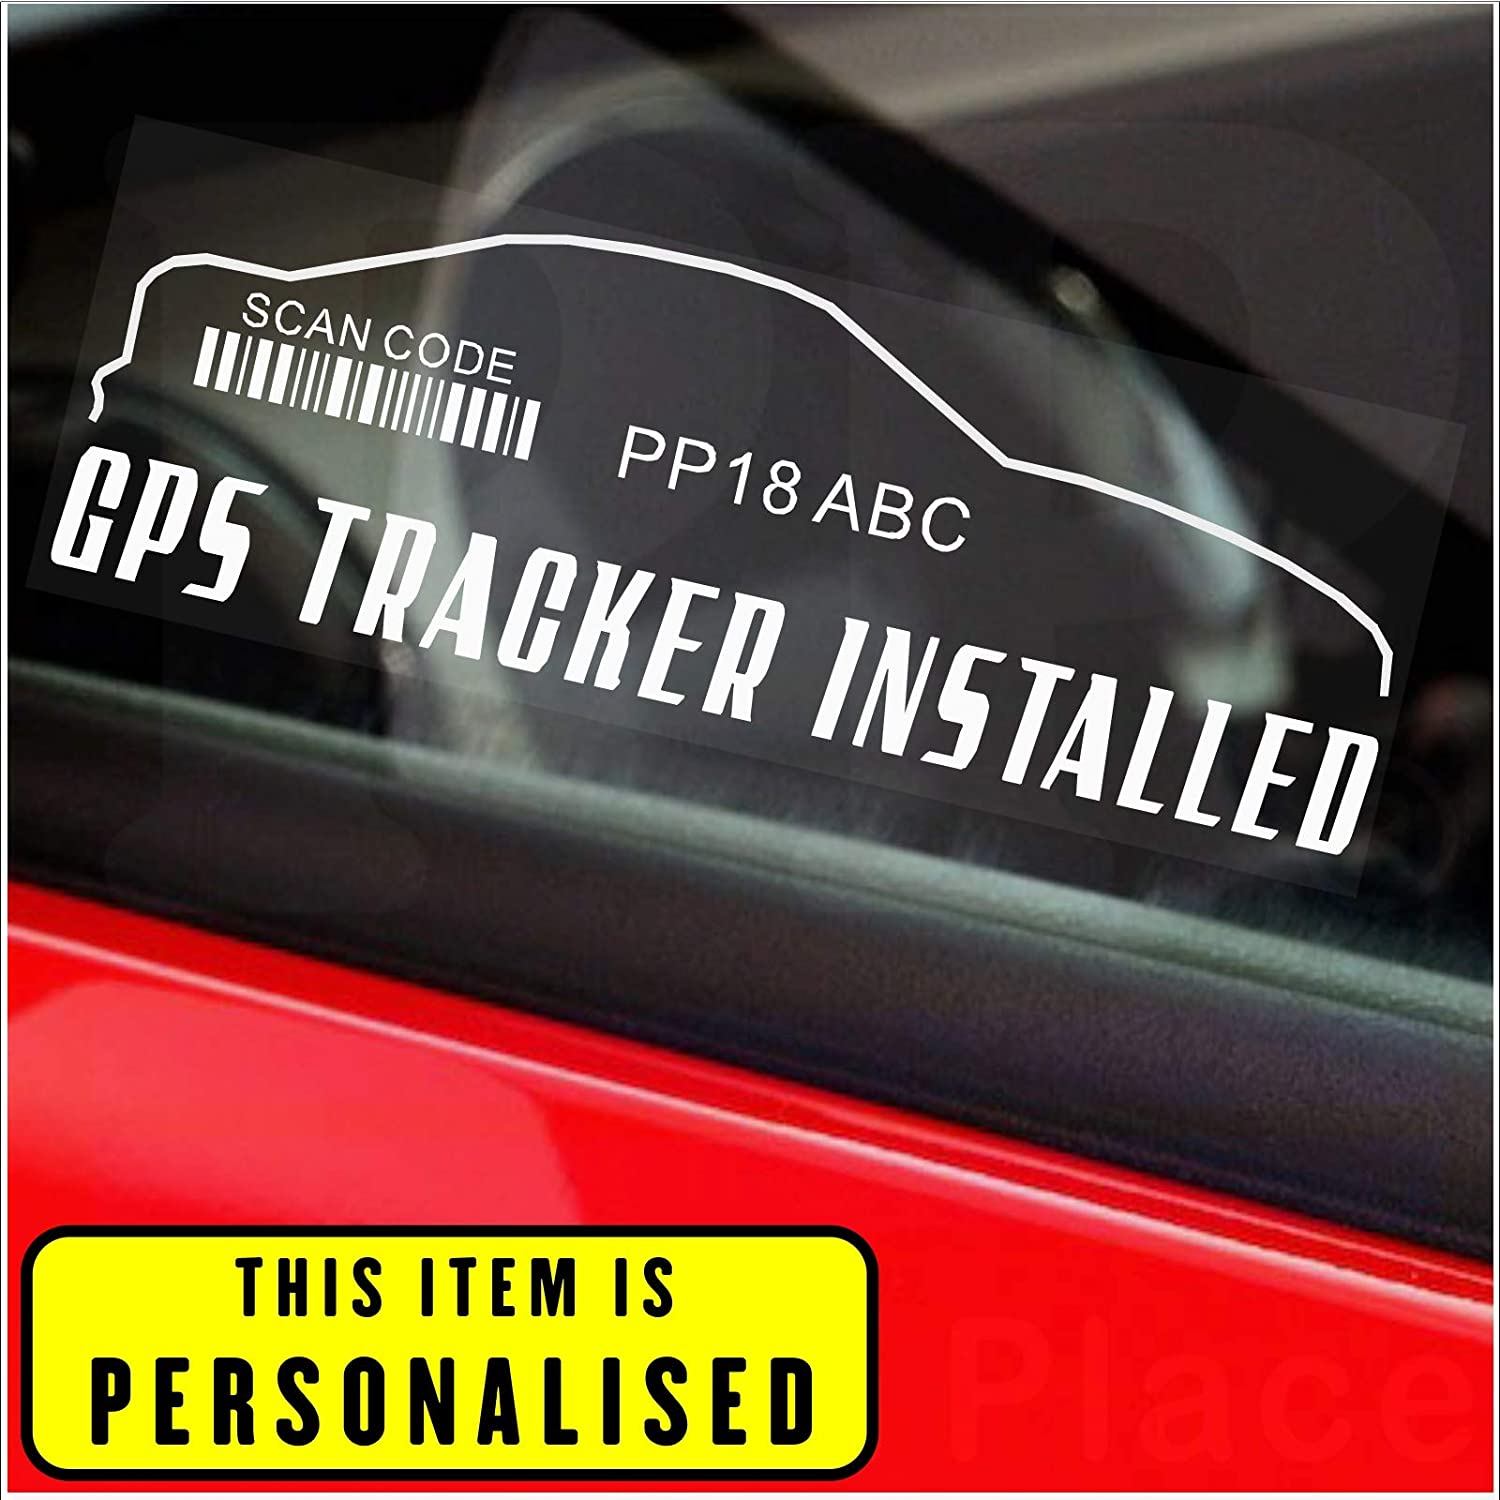 4 X Gps Tracker Stickers Outline Design Personalised Registration Number Printed Device Unit Security Alarm System Warning Window Signs Tag Car Van Truck Caravan Motorhome Lorry Taxi Rv Campervan Amazon Co Uk Car